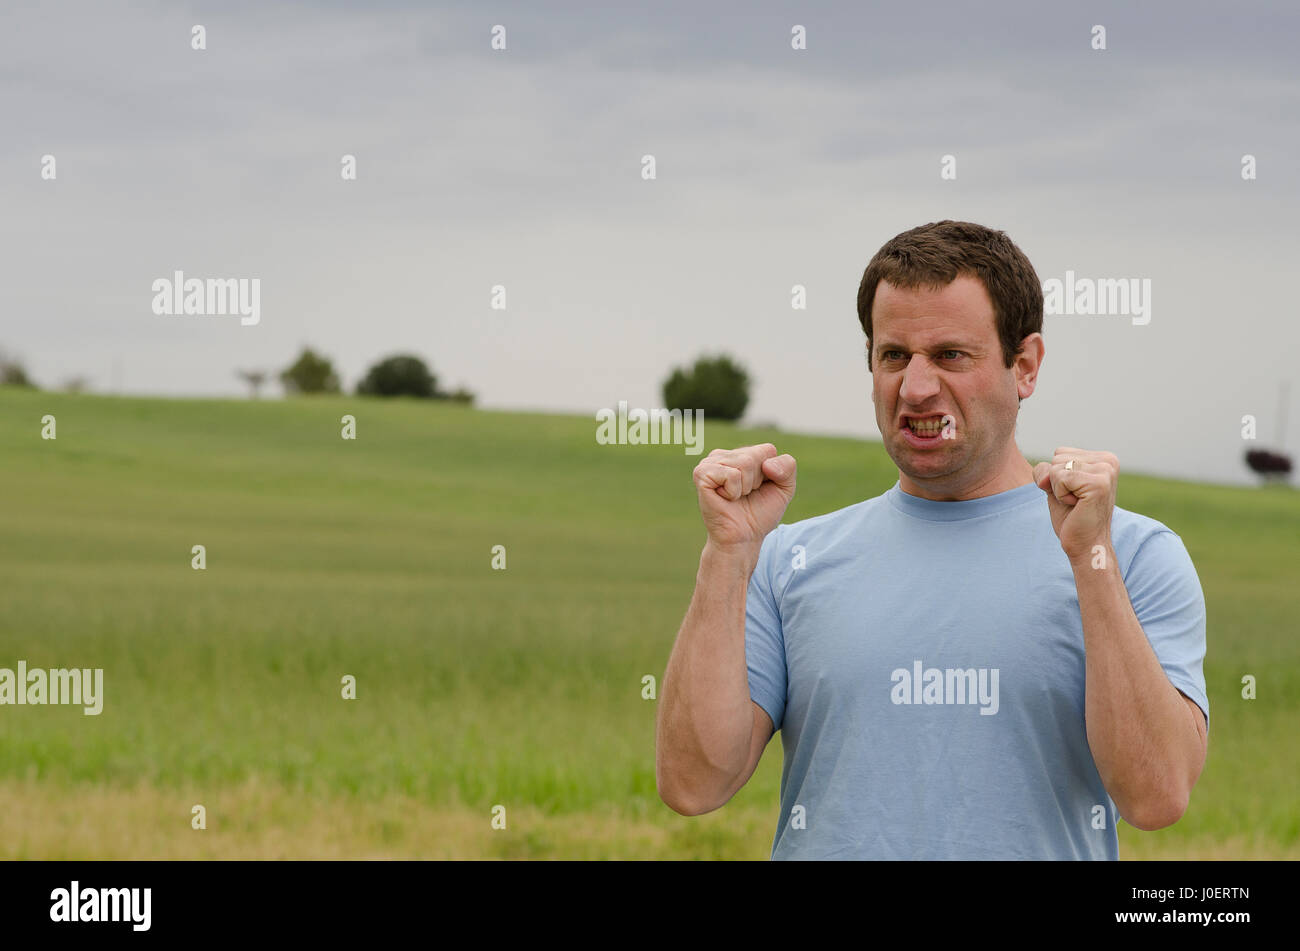 Furious man with clenched fists outside in the countryside. - Stock Image